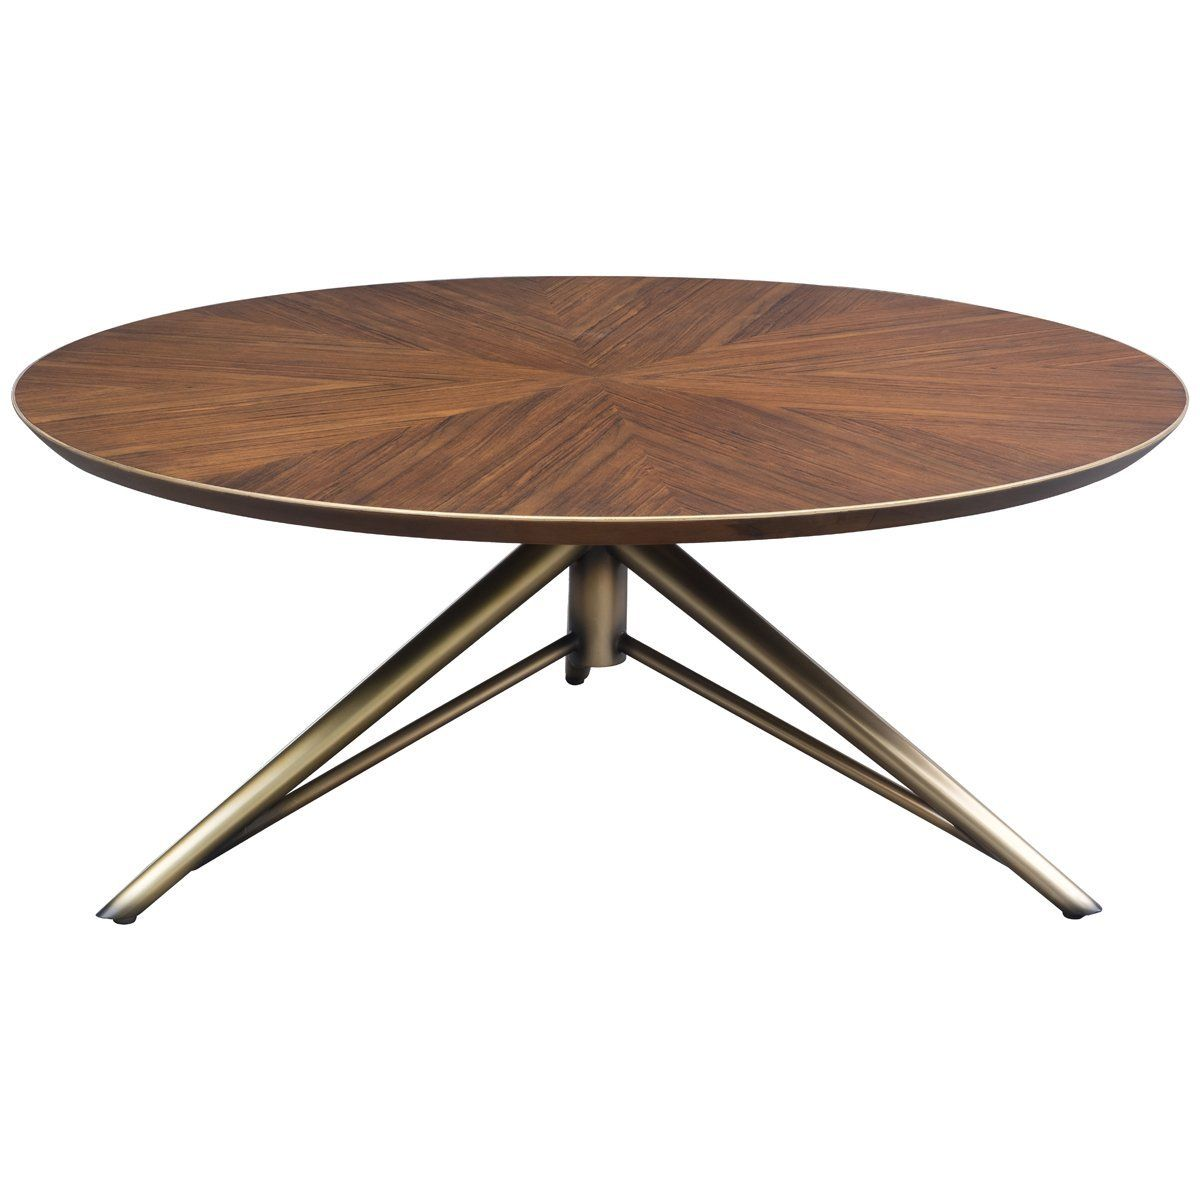 Nuevo living konrad coffee table coffee table wayfair accent chairs bloomsbury table furniture